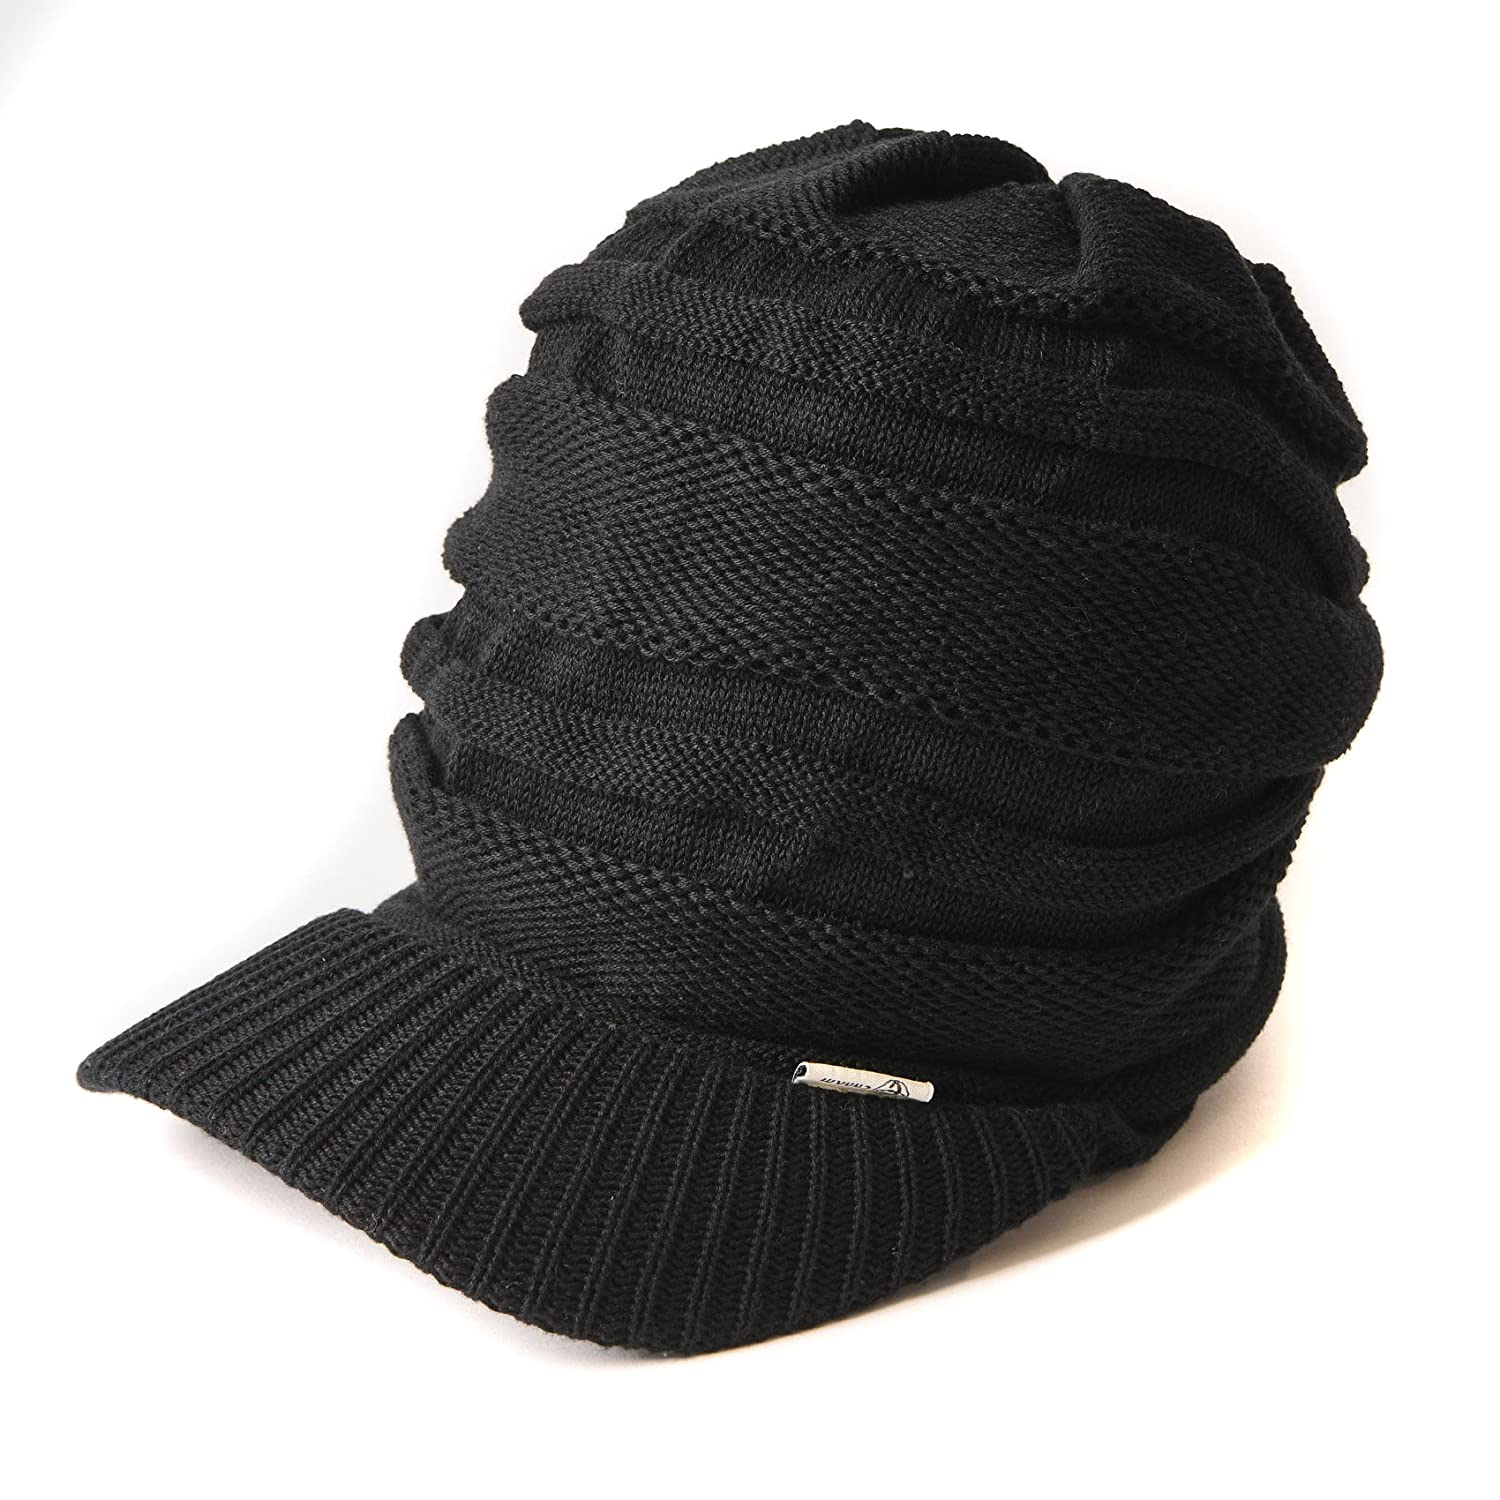 Amazon.com  Casualbox mens Peak Cap Beanie Knit Hat Summer Warm Slouch  Baggy Unisex Black  Clothing 1898fd94a